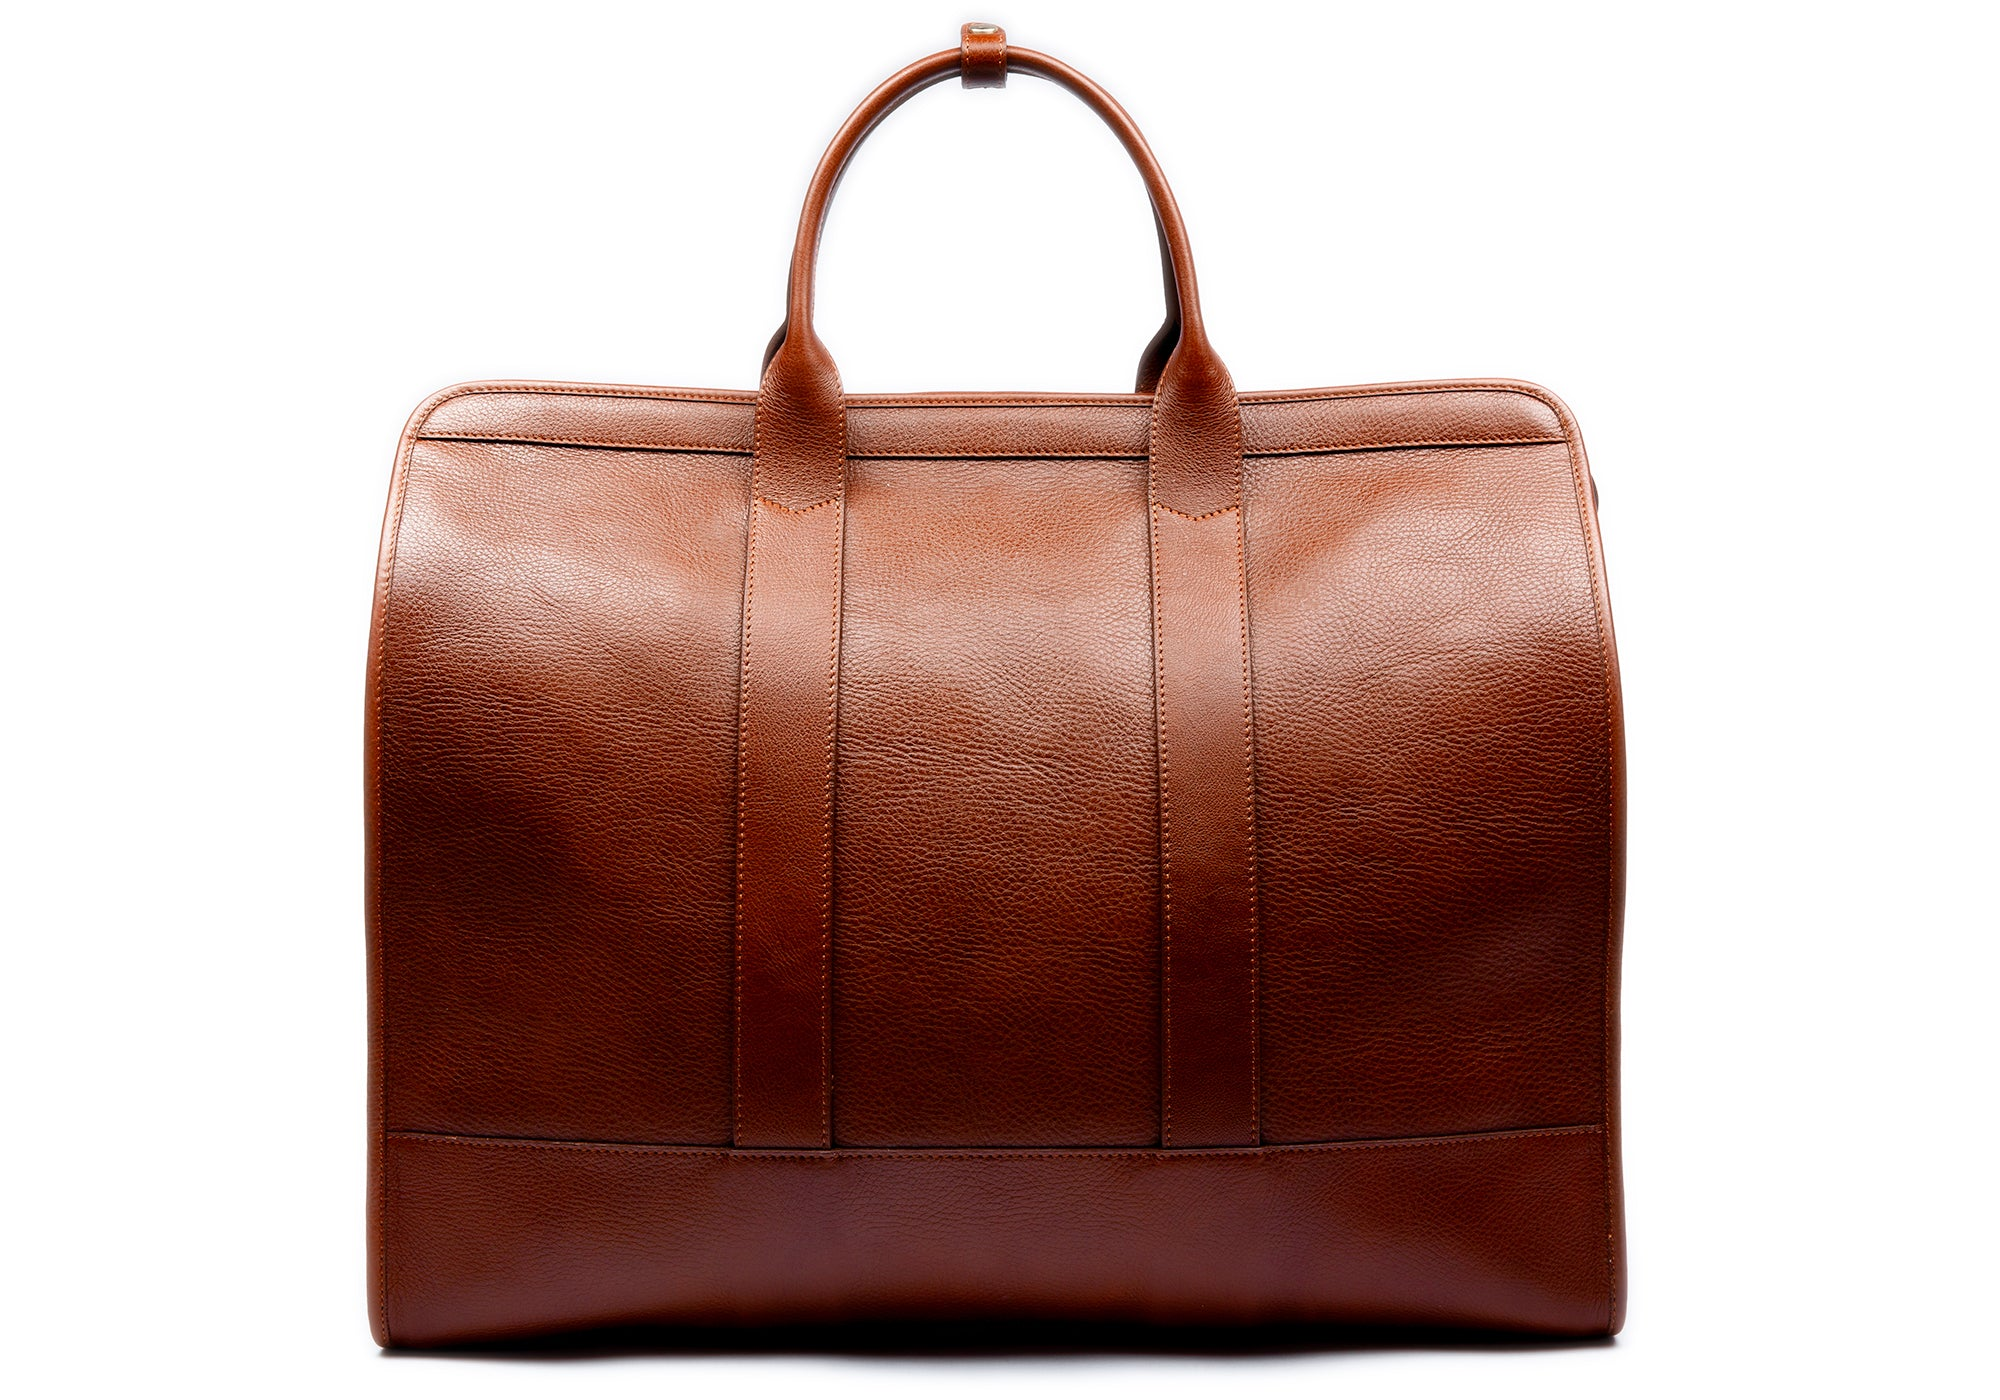 Leather Trunk Duffle Bag Saddle Tan